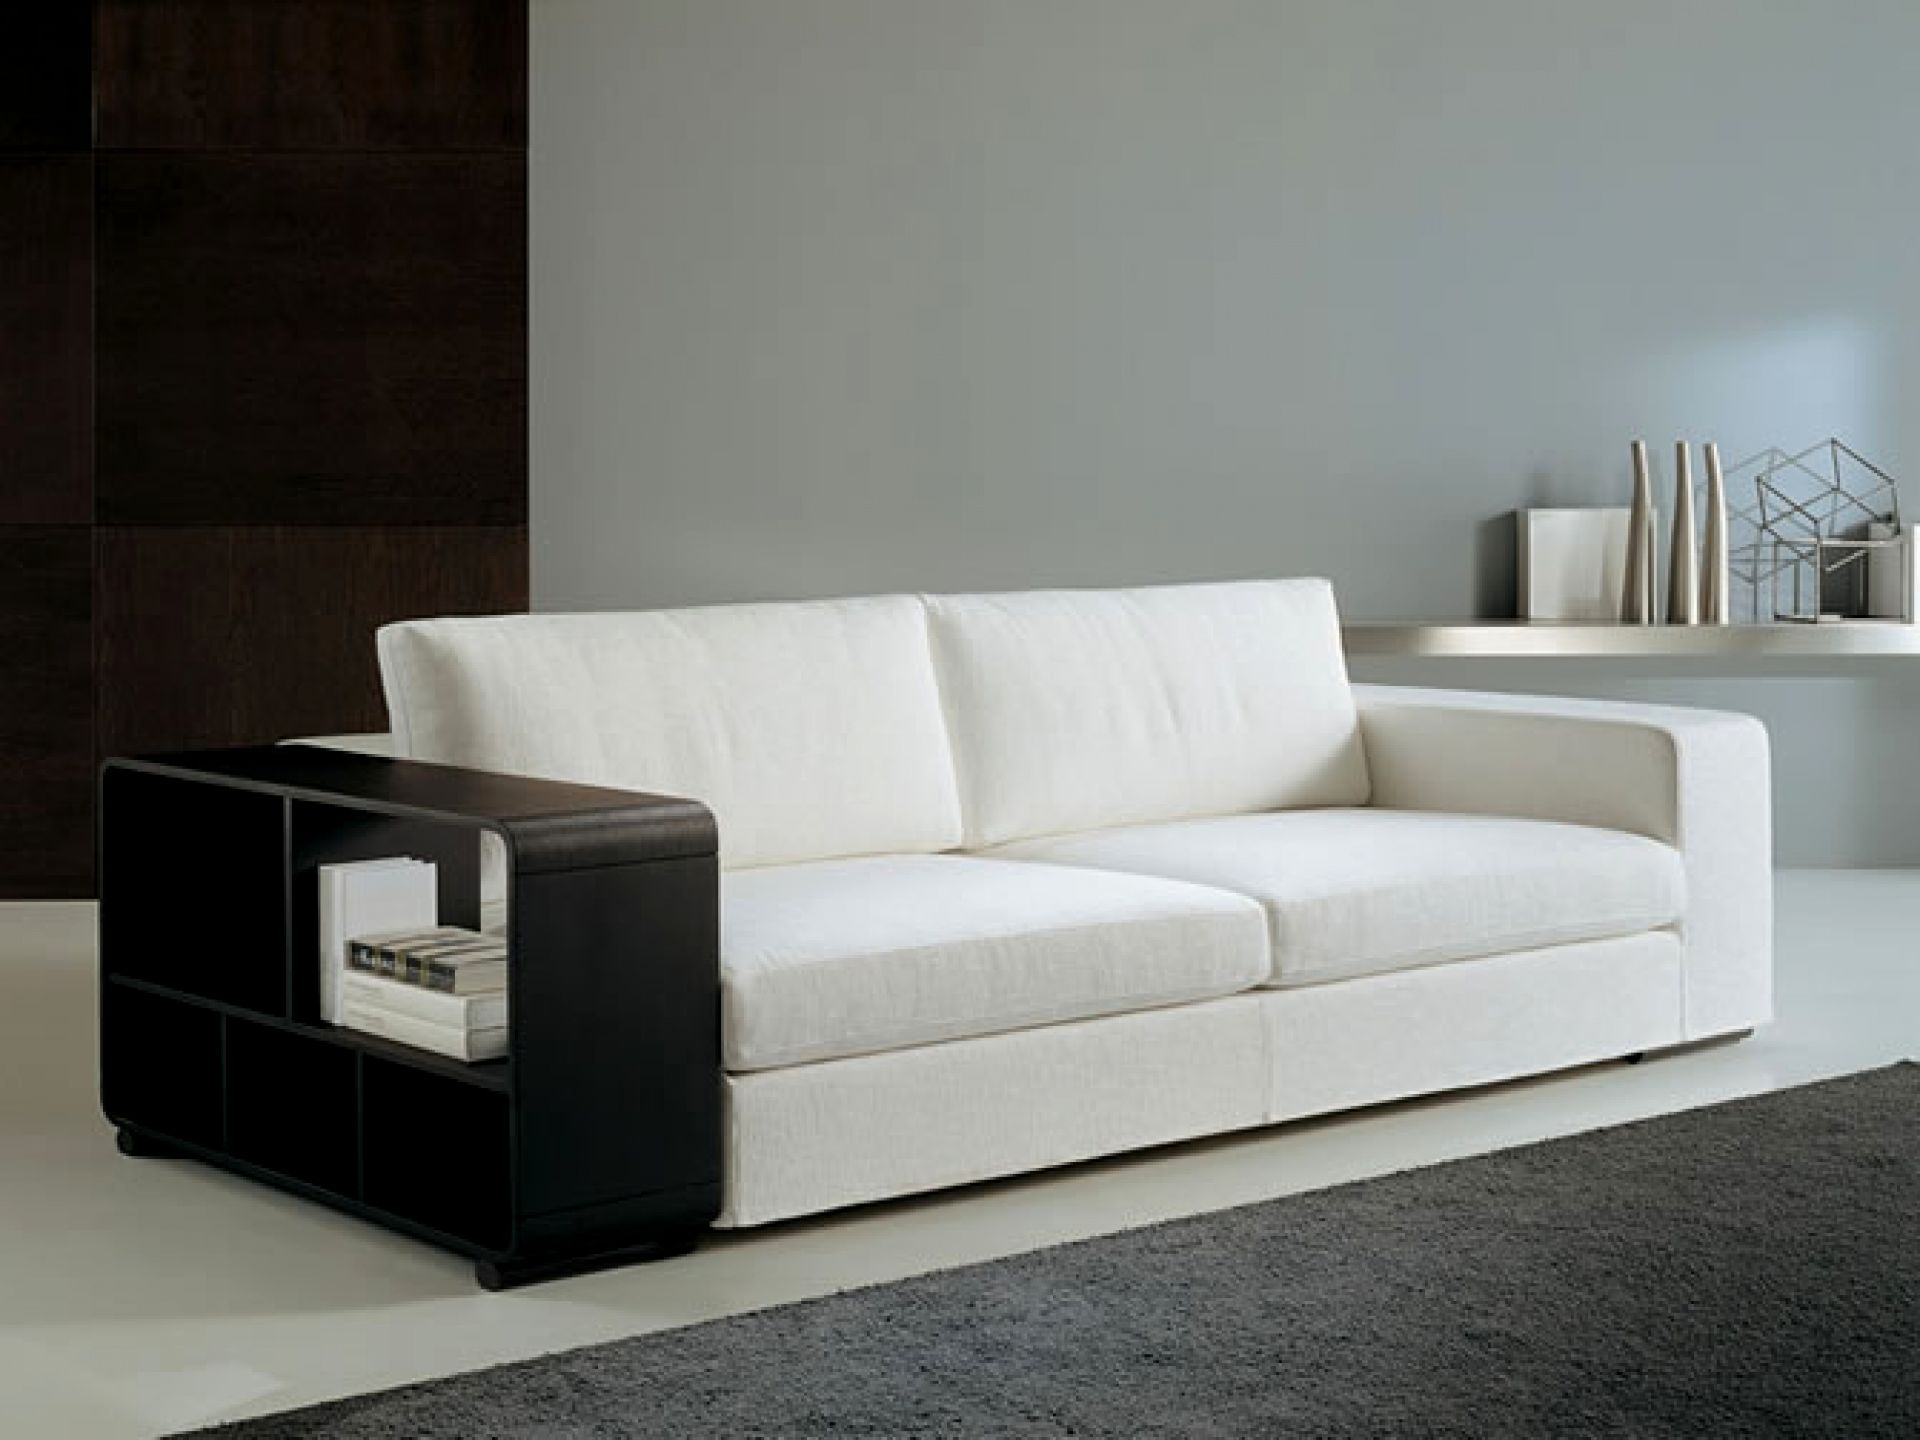 superb clearance sectional sofas design-Wonderful Clearance Sectional sofas Inspiration